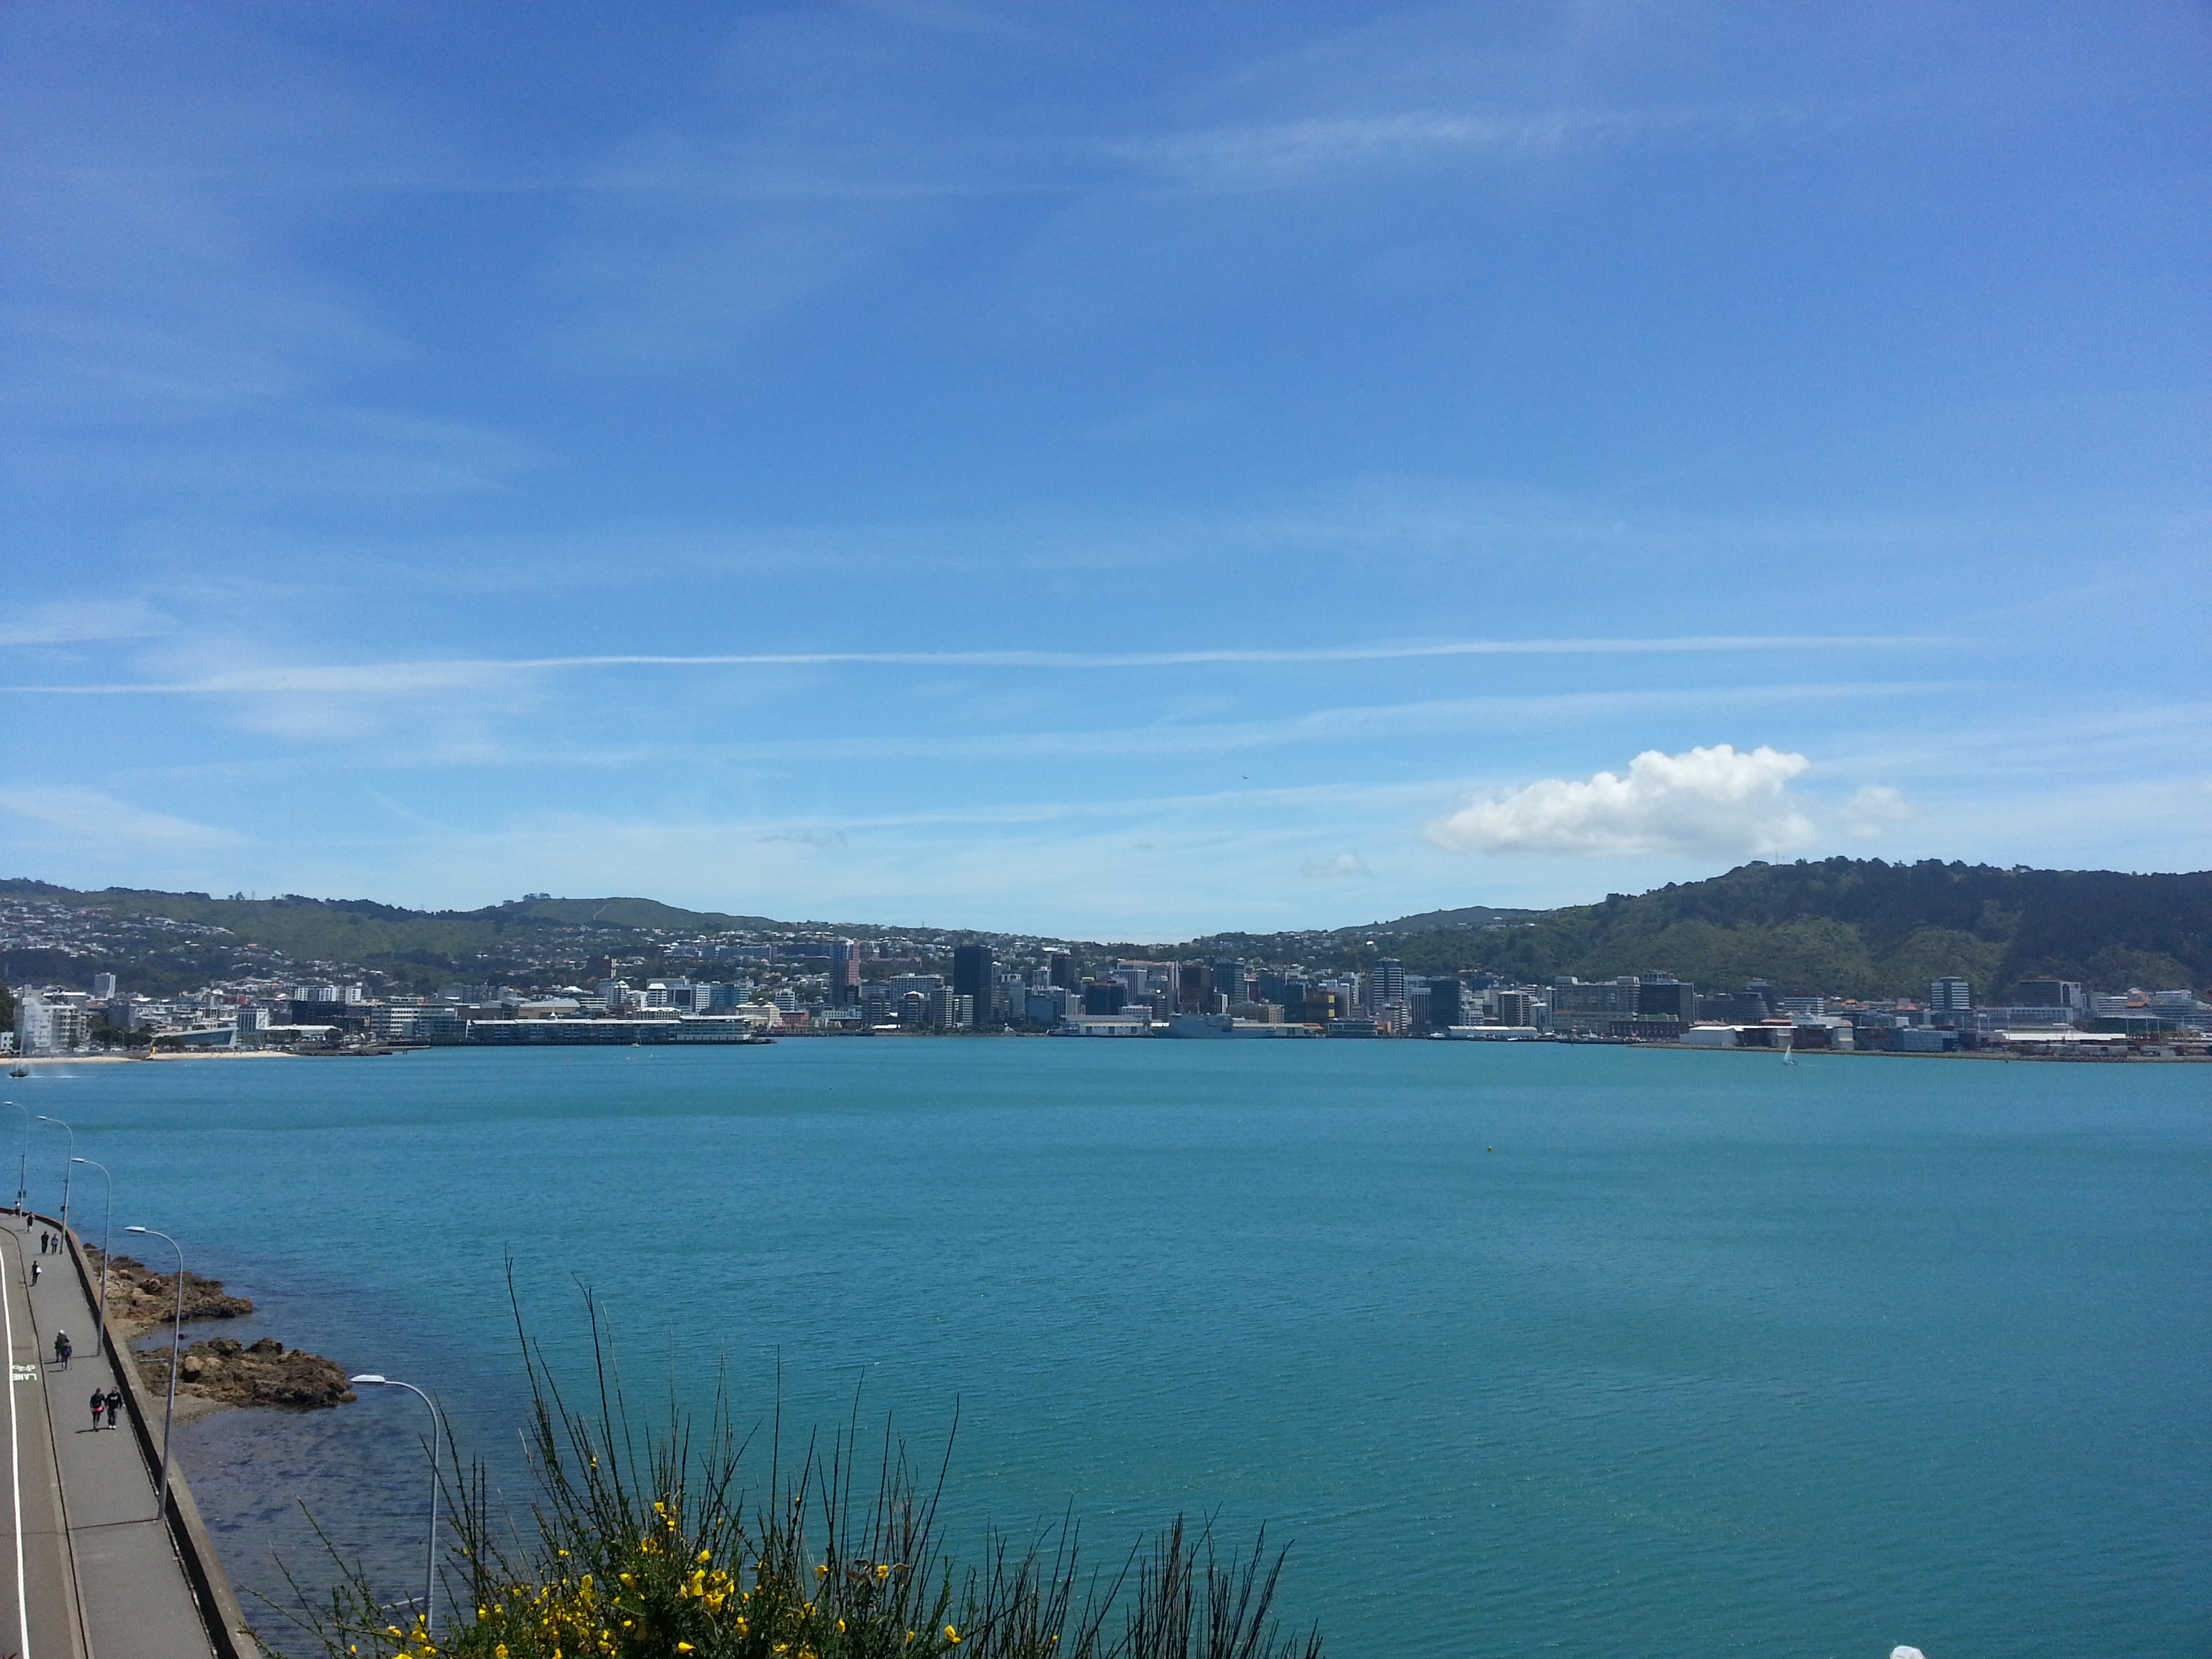 Looking back at the CBD and the port from Roseneath